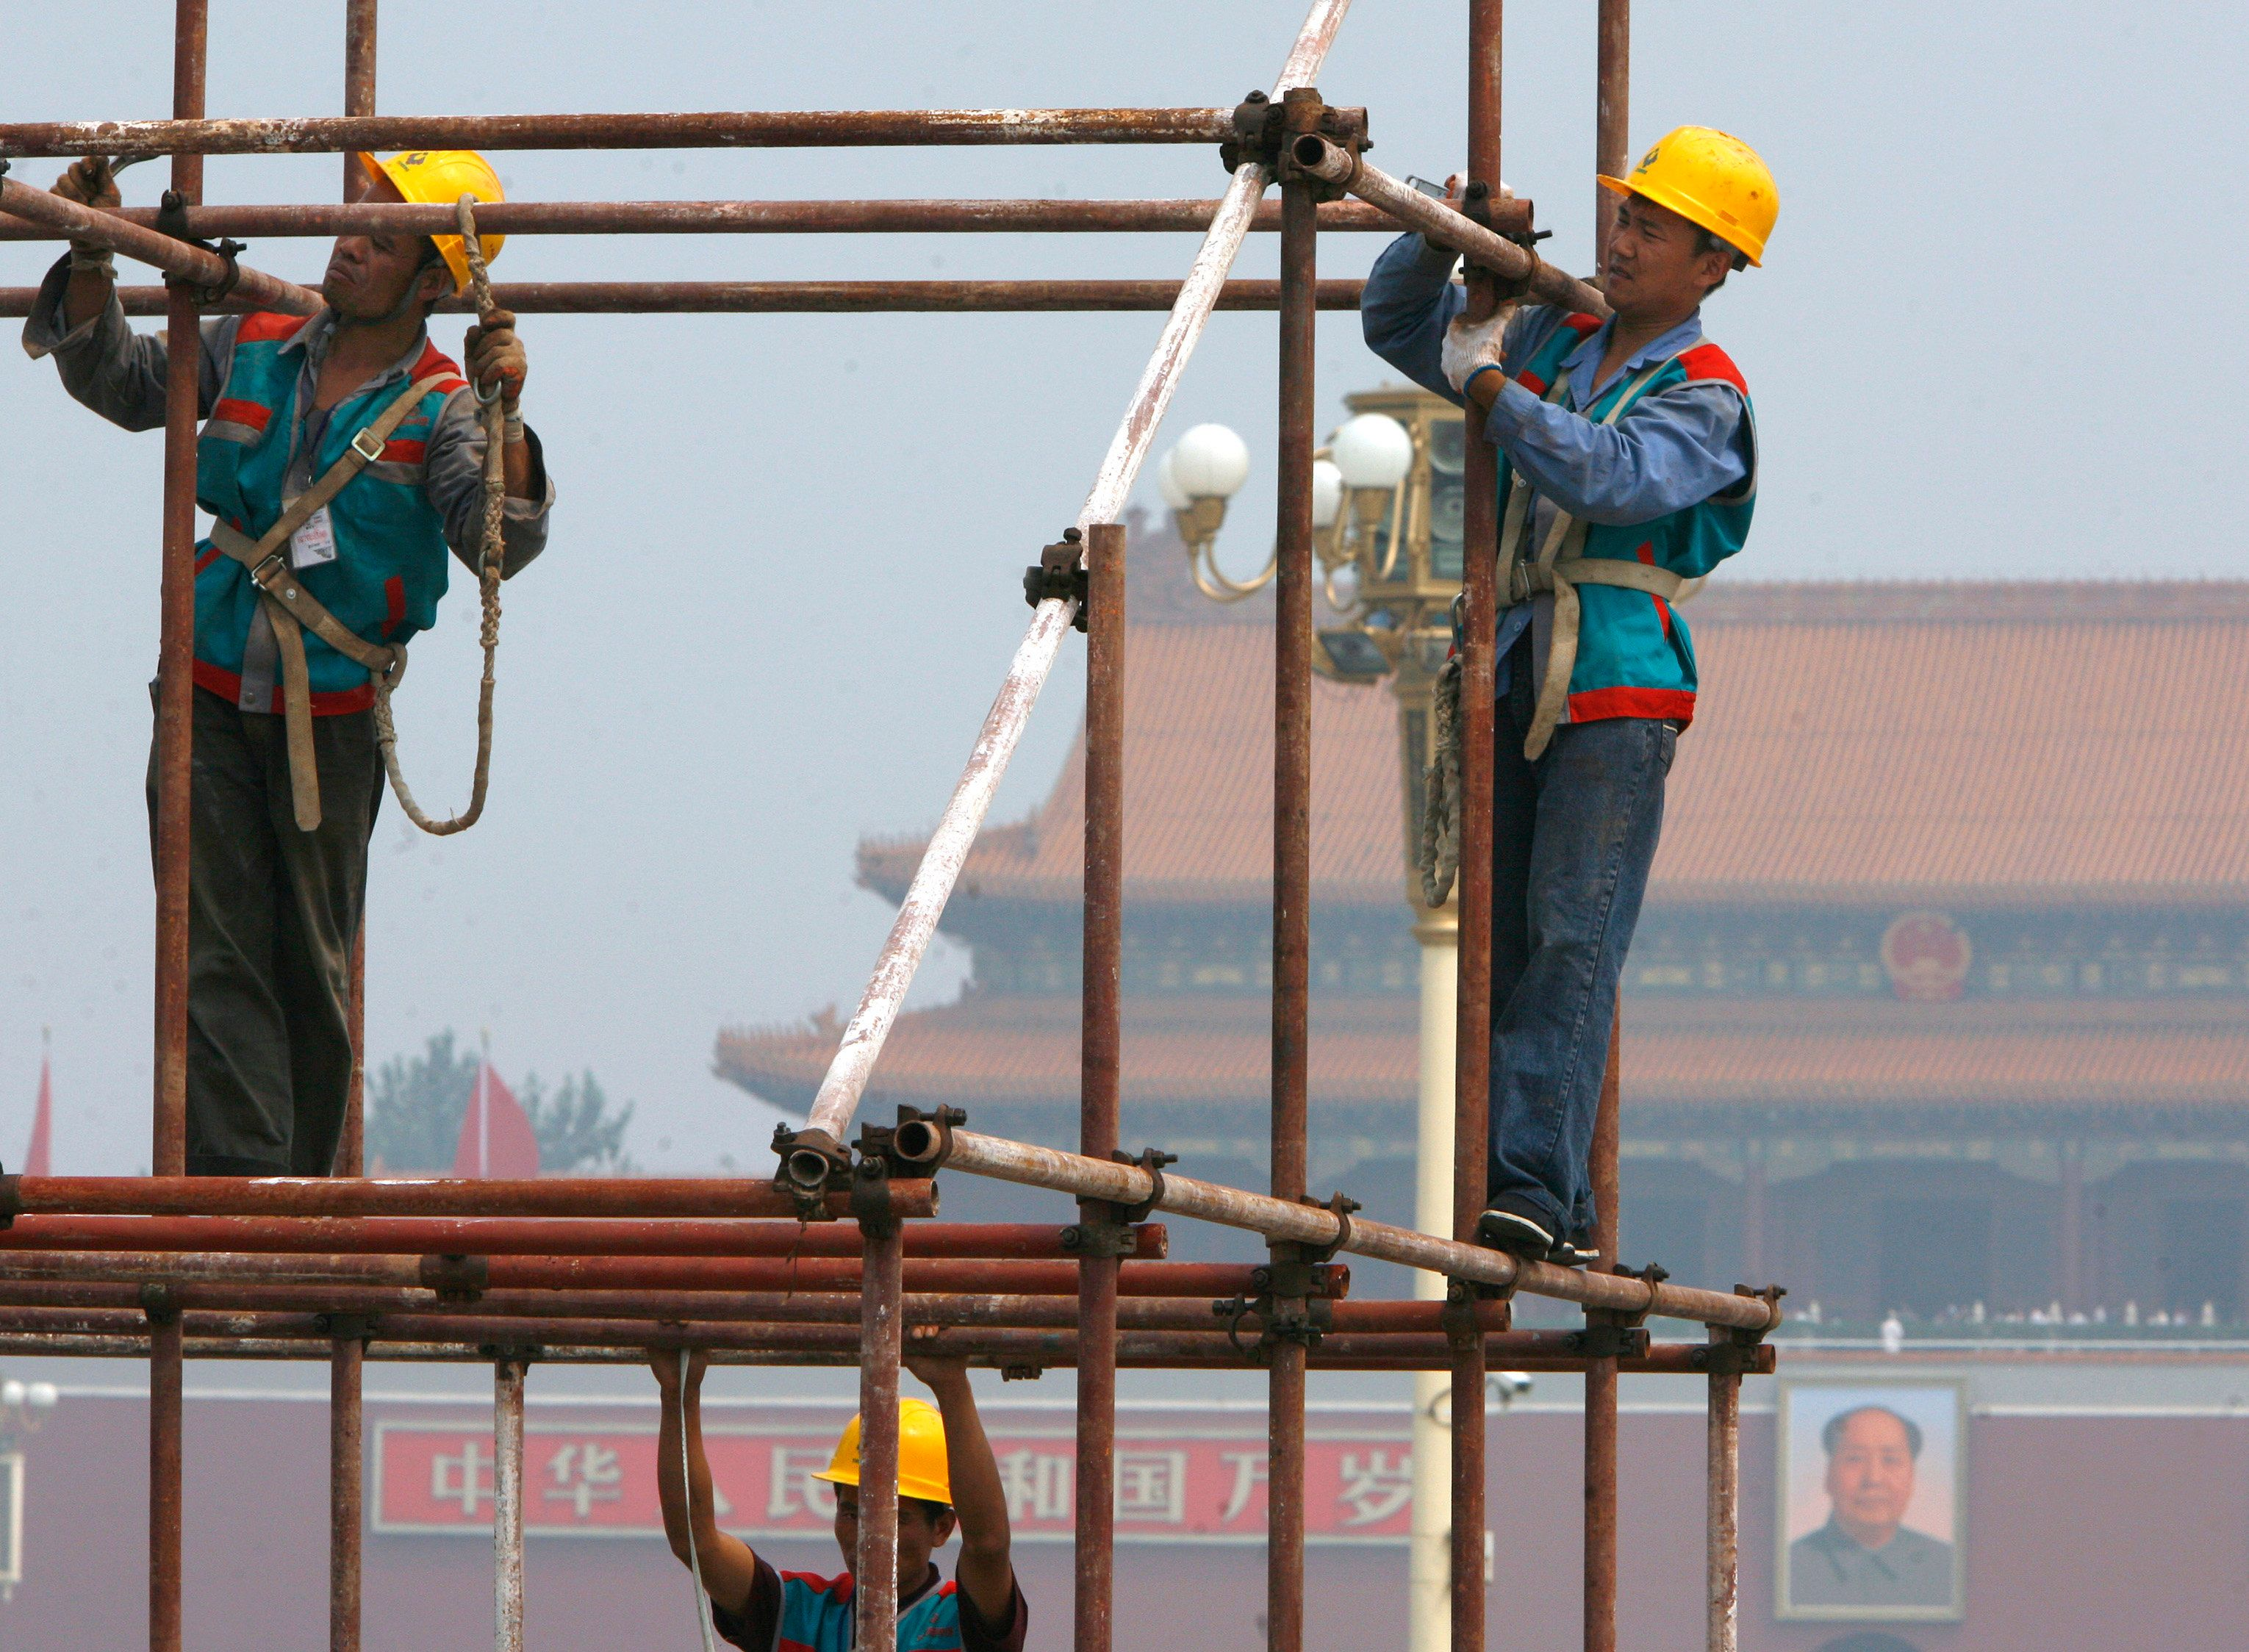 Hard Numbers: China's economy expands, US prisoners decline, Tunisian PM quits, Hindu pilgrims go to Kashmir